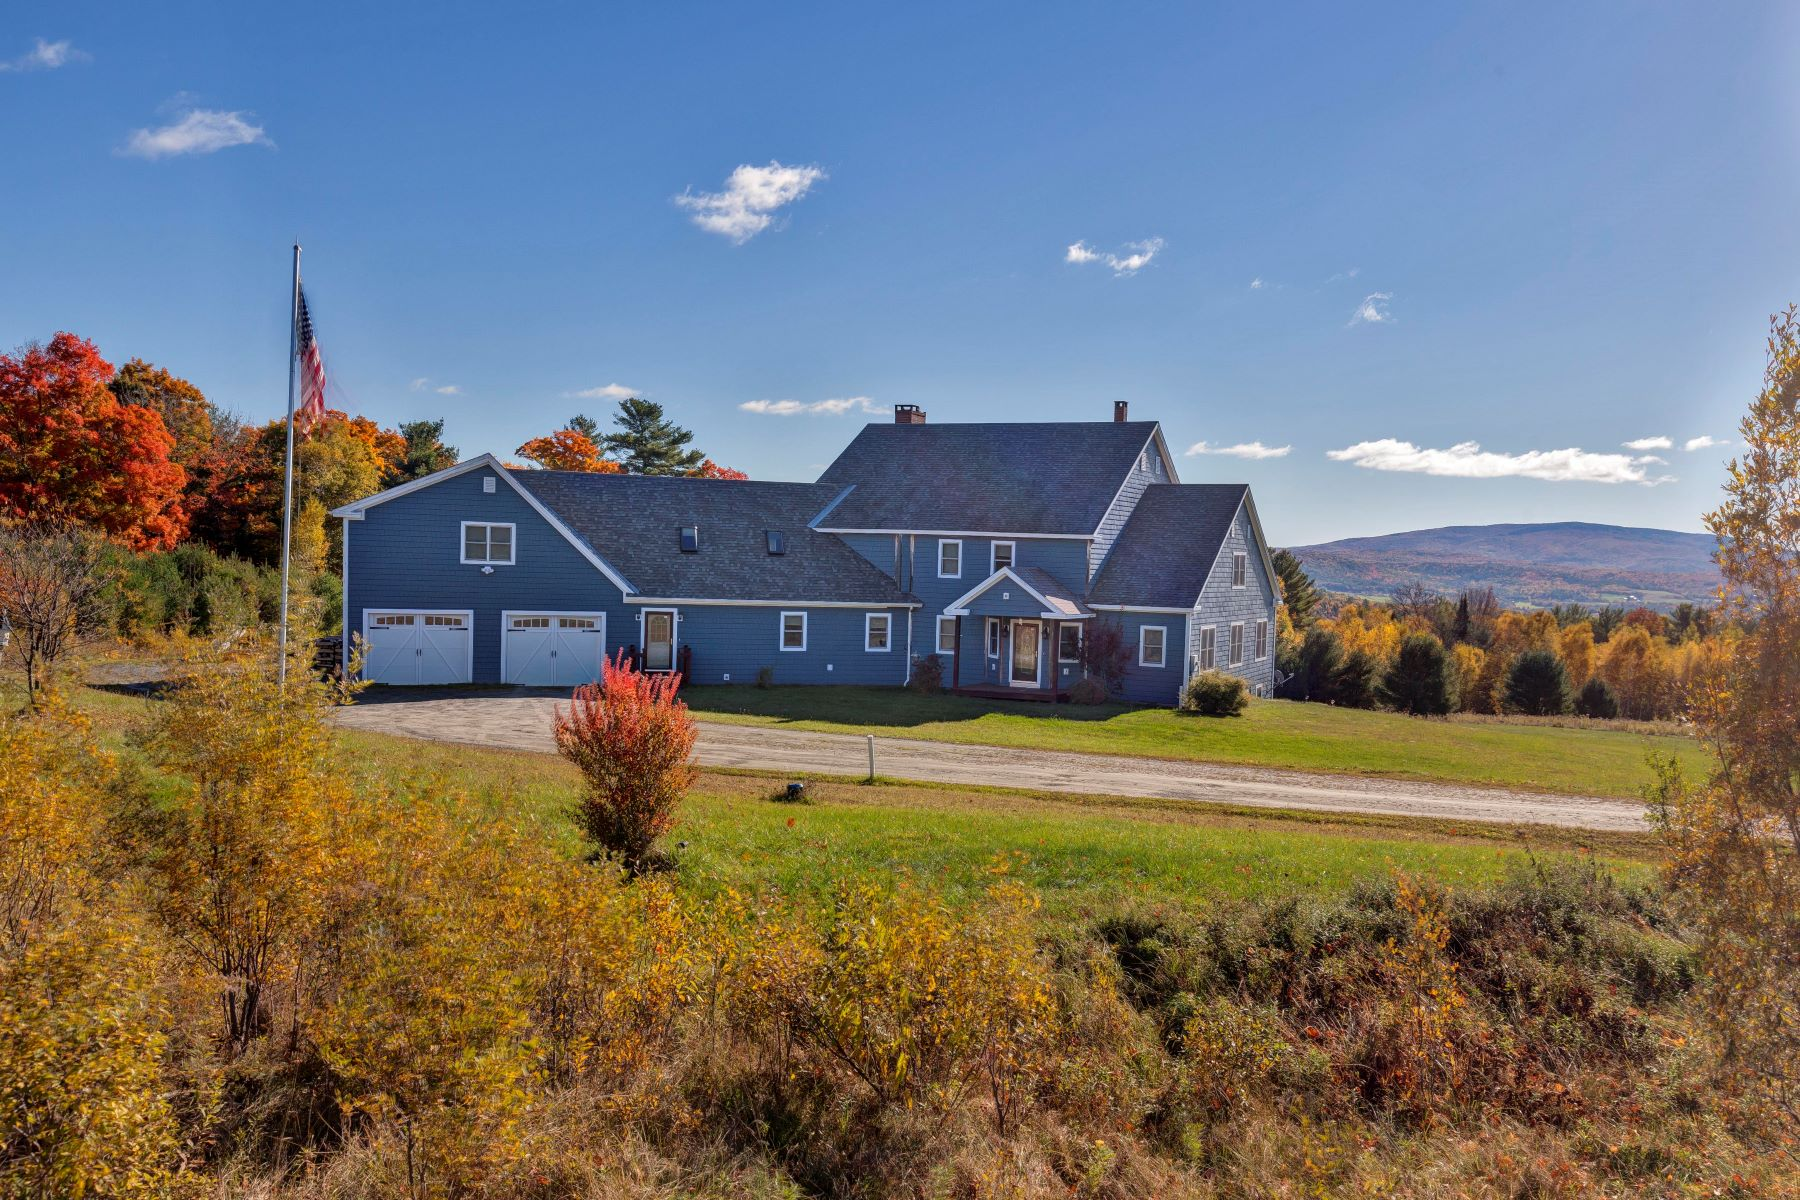 Casa Unifamiliar por un Venta en Home for entertaining with views in Newbury 1235 Rogers Hill Rd Newbury, Vermont, 05051 Estados Unidos